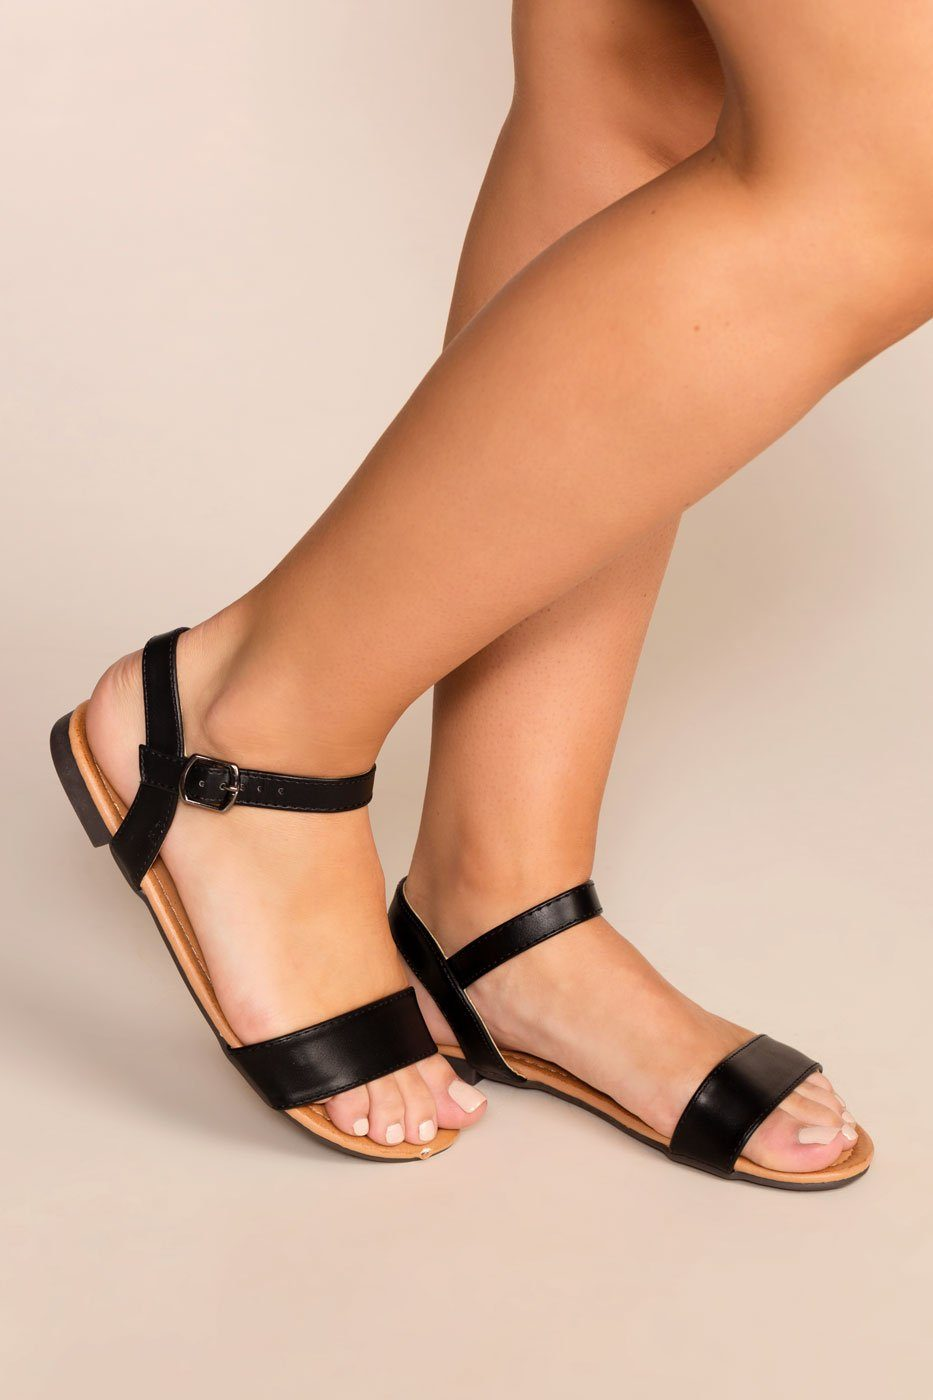 8600a8fe3ac1f About Town Black Sandals | Weeboo International